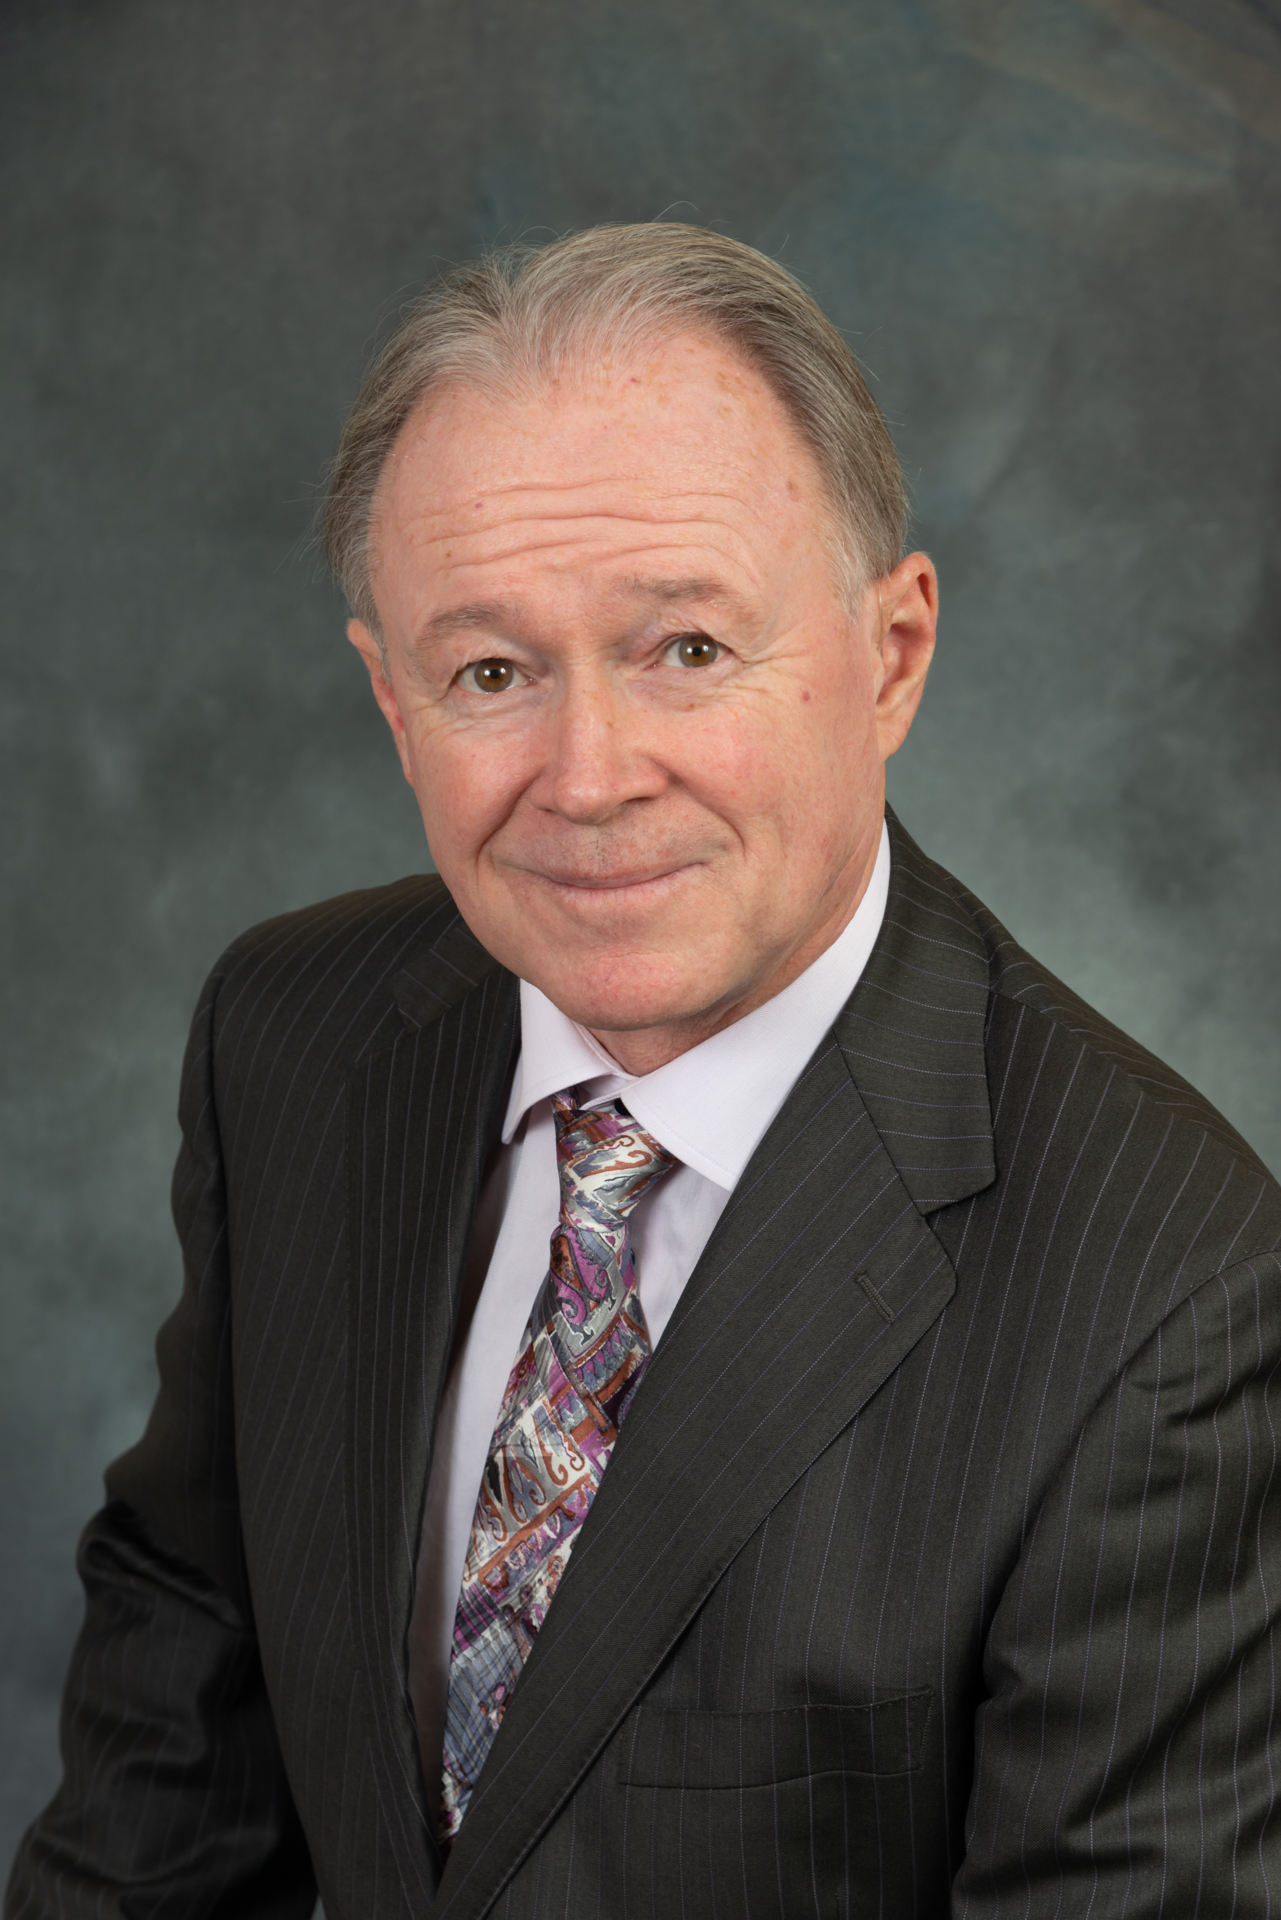 Image of Councillor Kerr